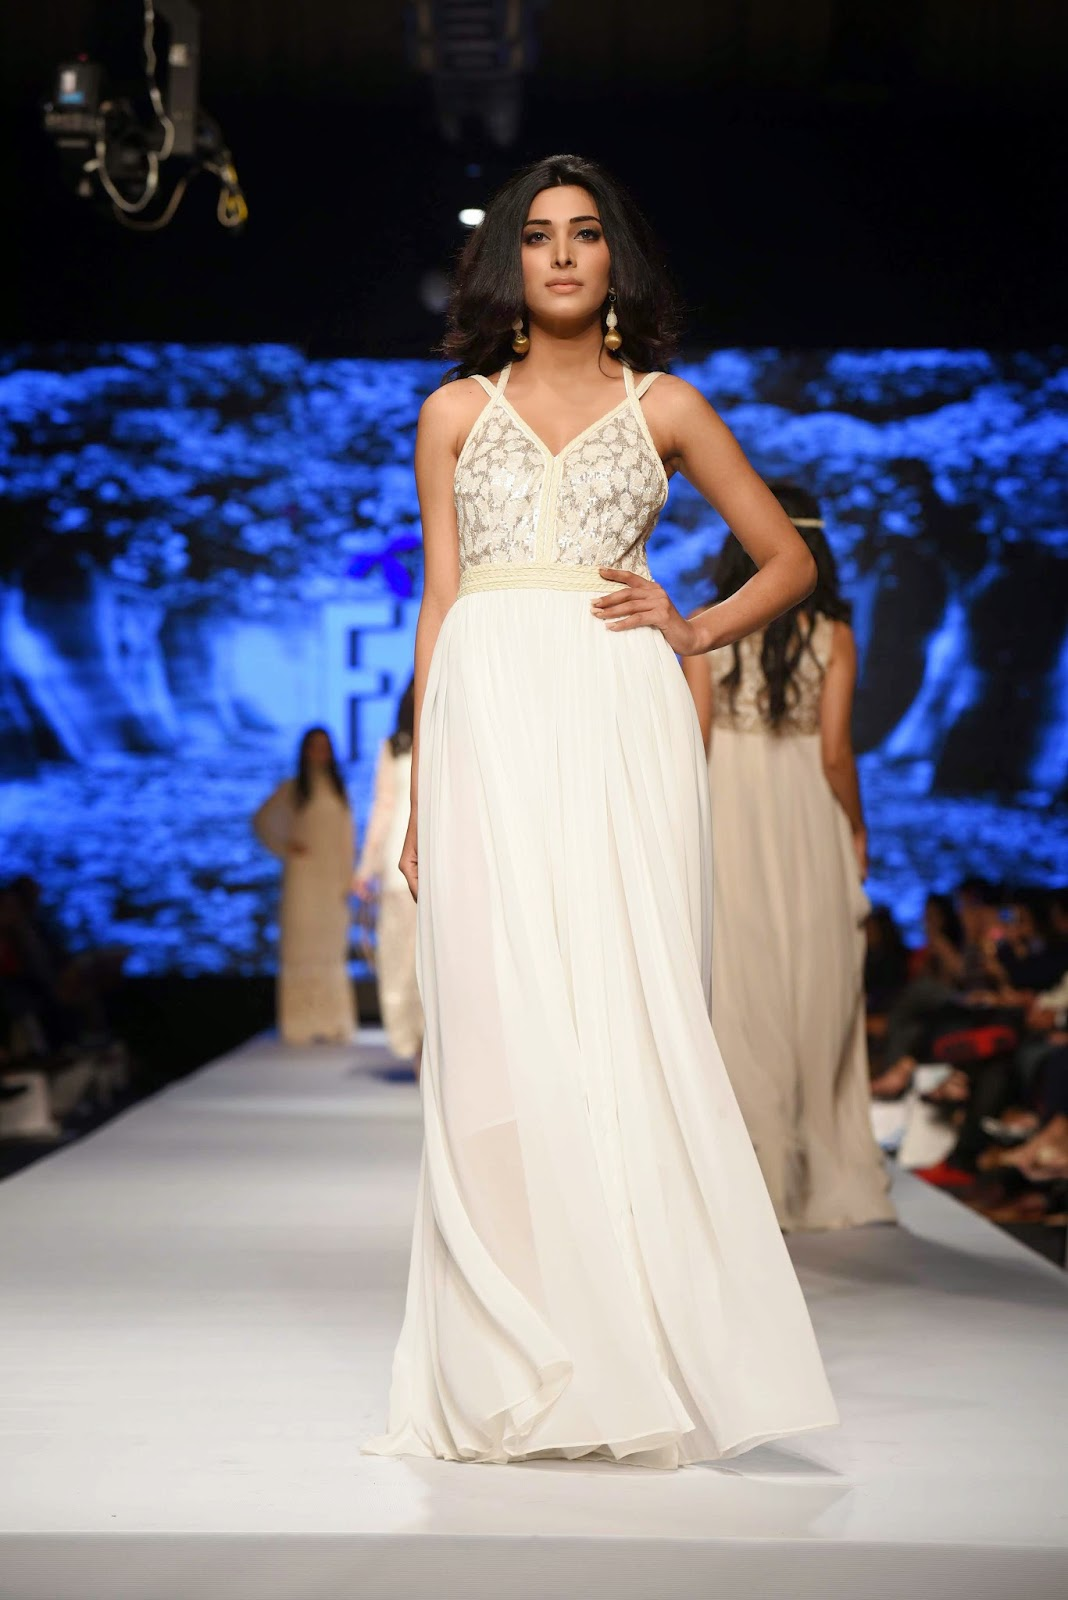 Fnk Asia Telenor Fashion Pakistan Week 2015